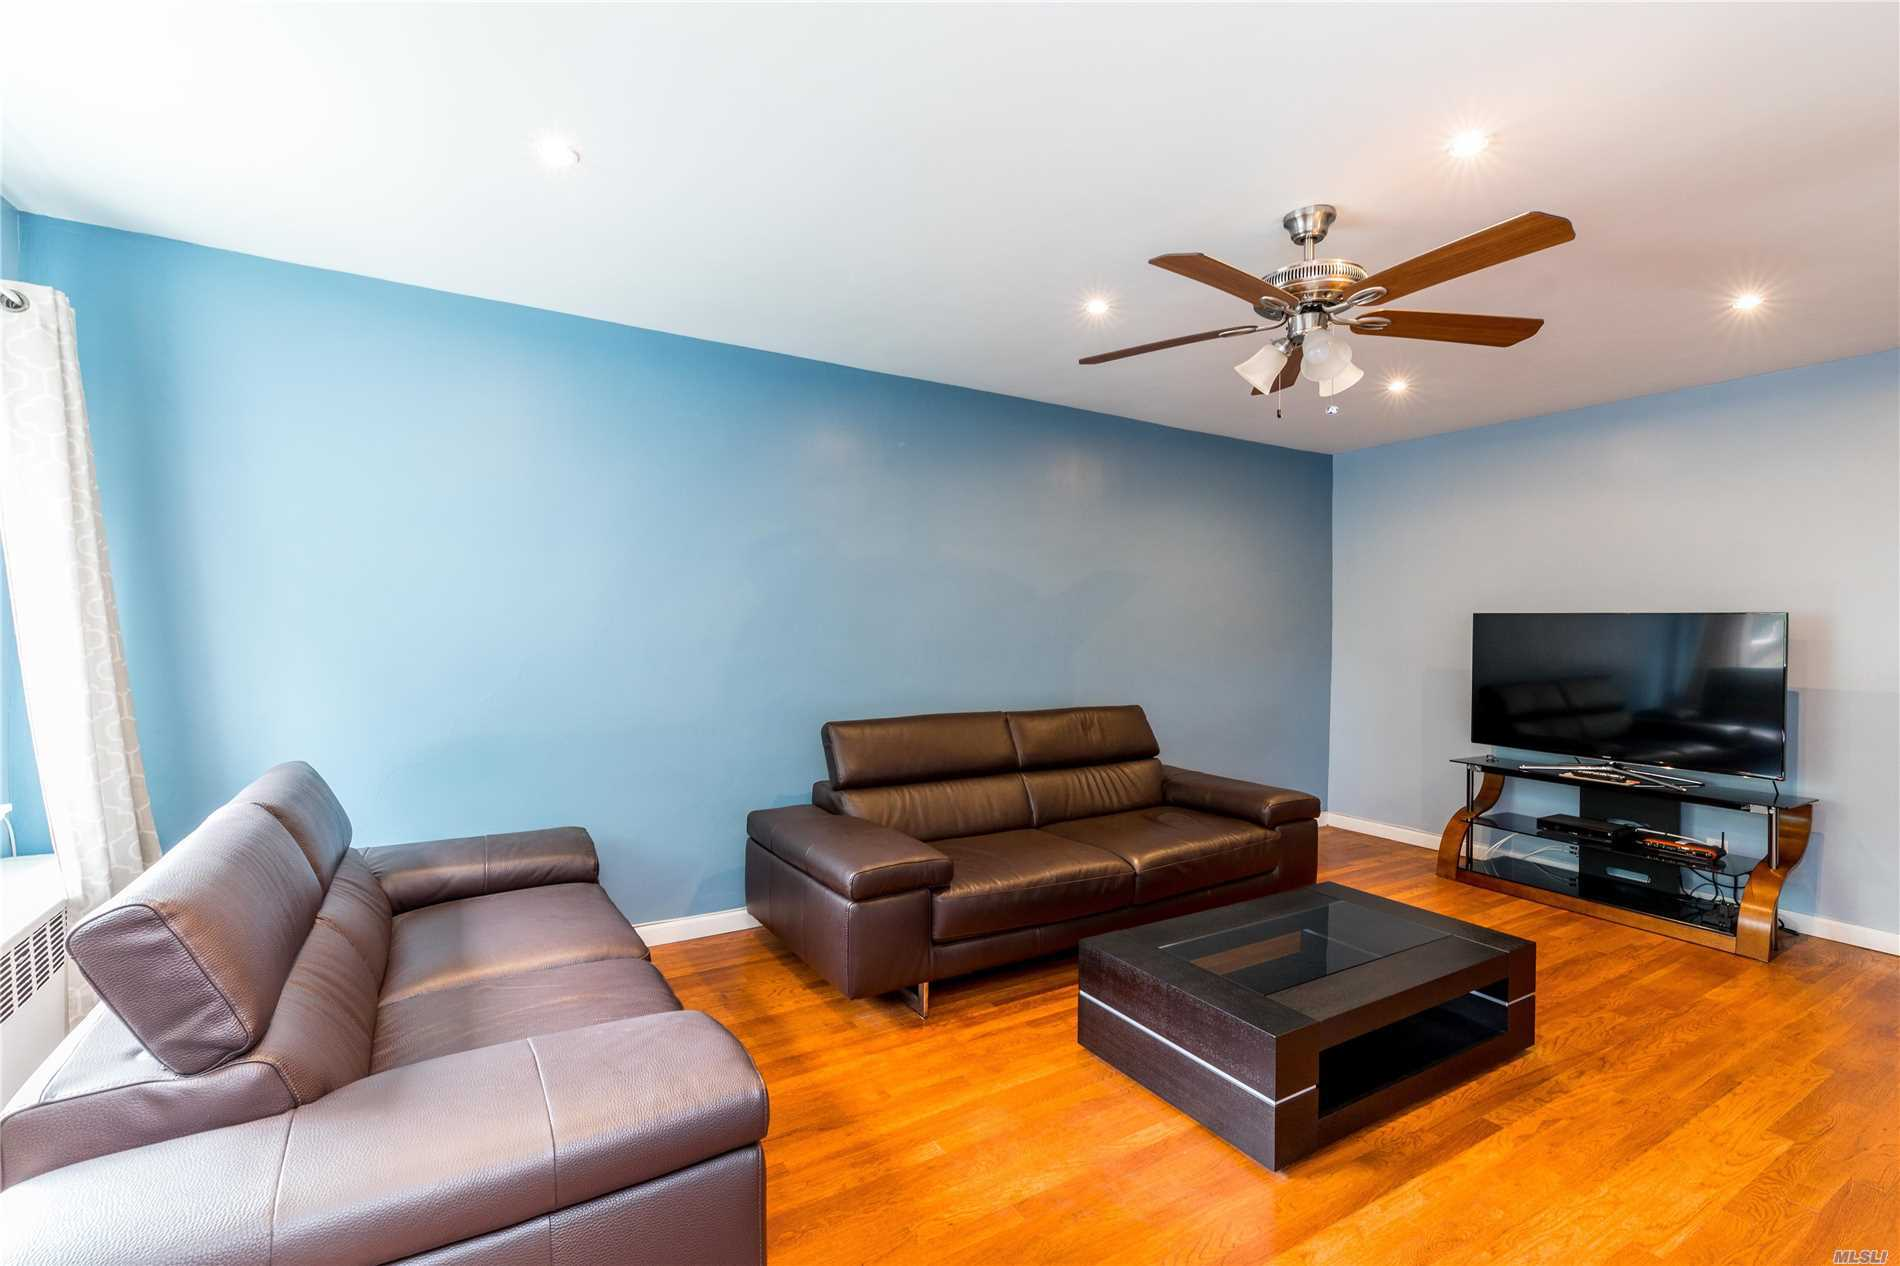 Property for sale at 30 70 Street, Woodside NY 11377, Woodside,  New York 11377